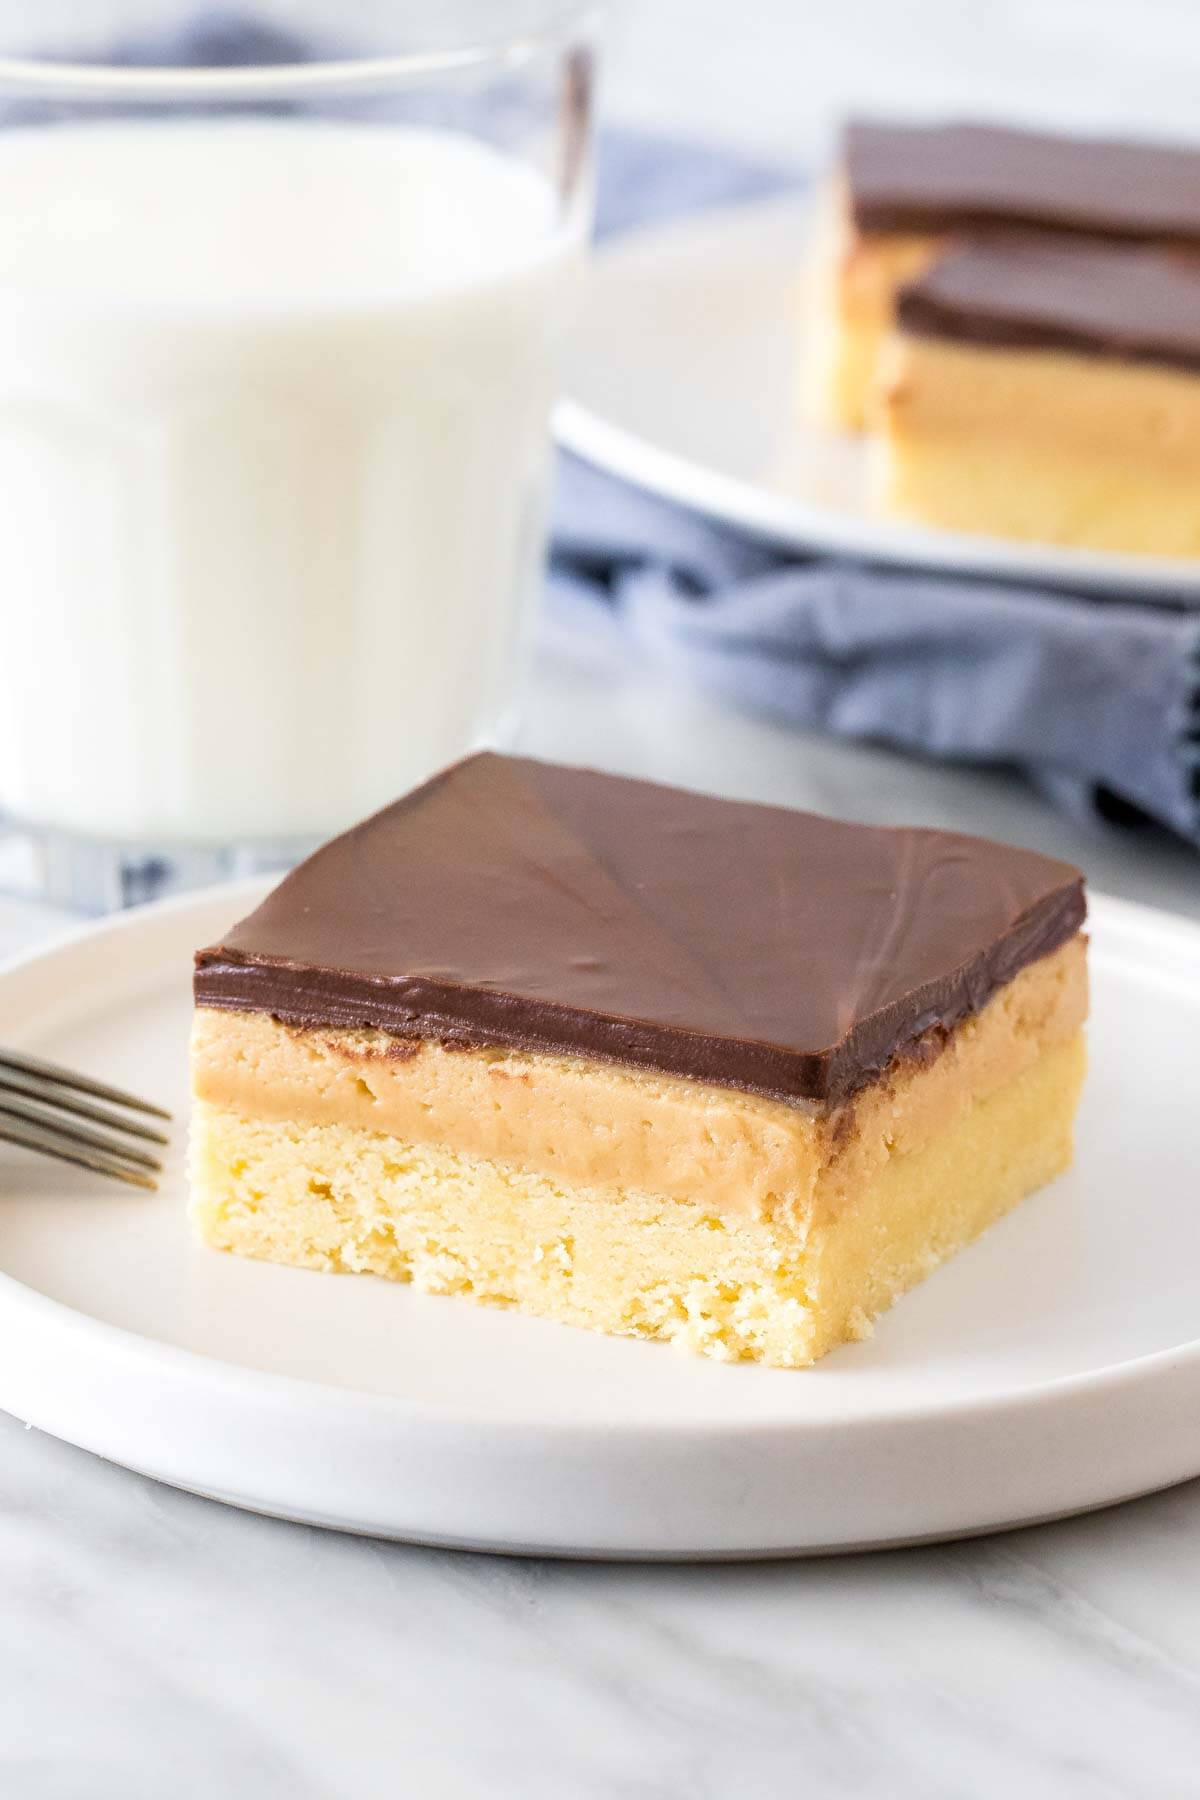 Peanut butter millionaire's shortbread bar on a plate with a glass of milk.